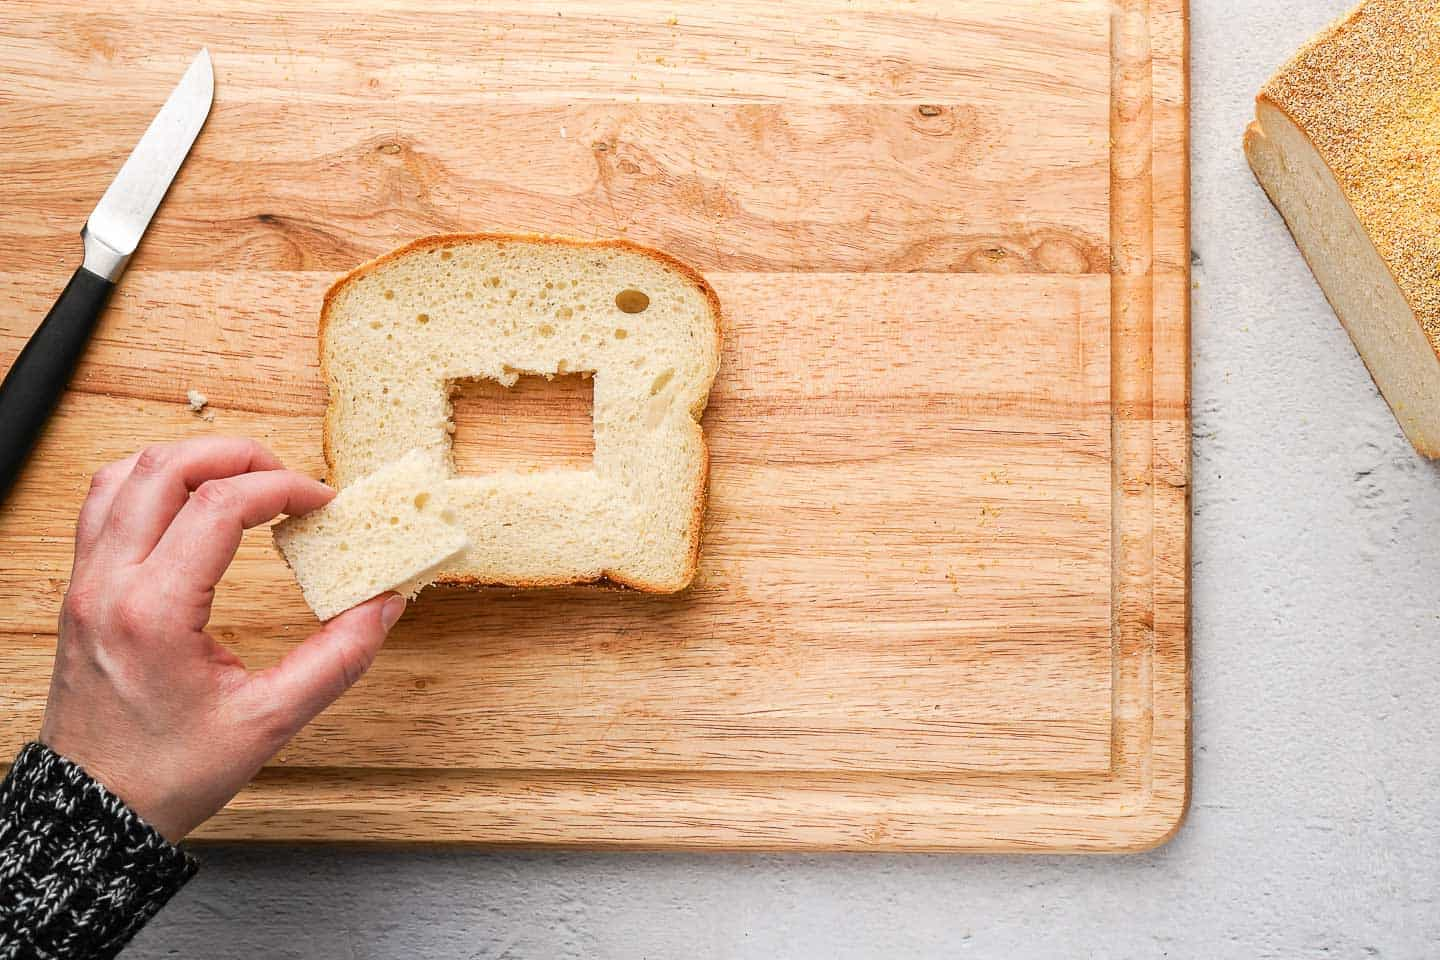 Hand holding a square of bread over top slice of bread